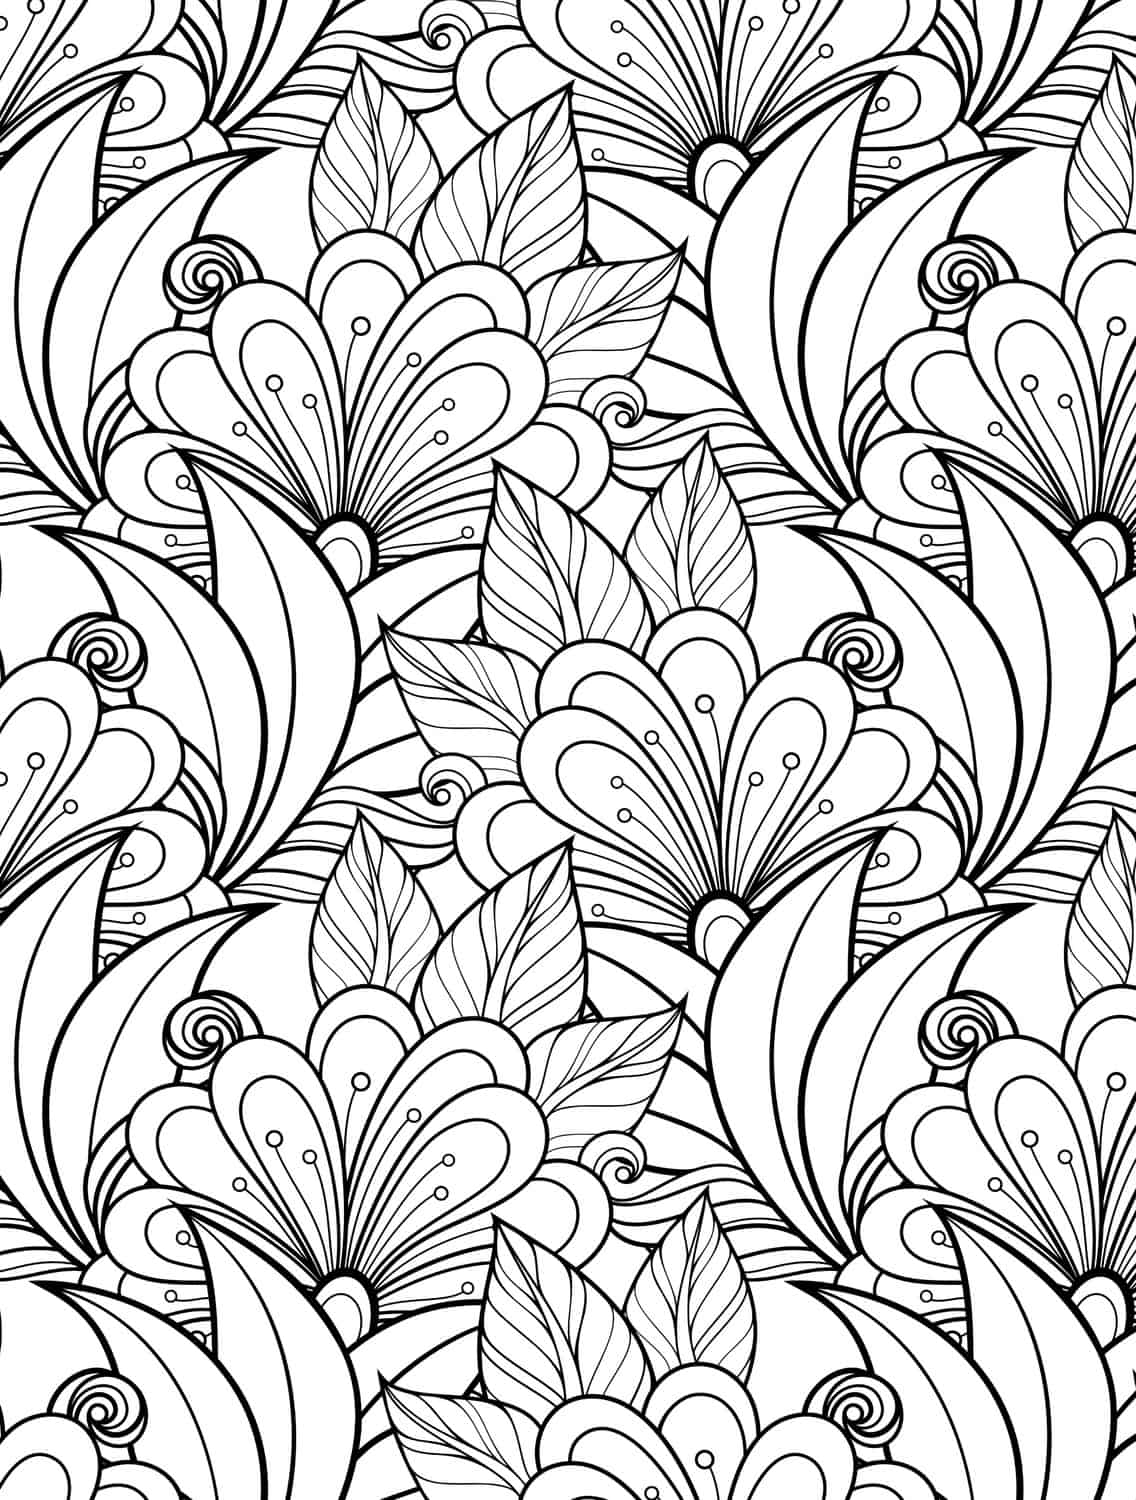 gorgeous free printable coloring book pages web - Free Printable Coloring Book Pages